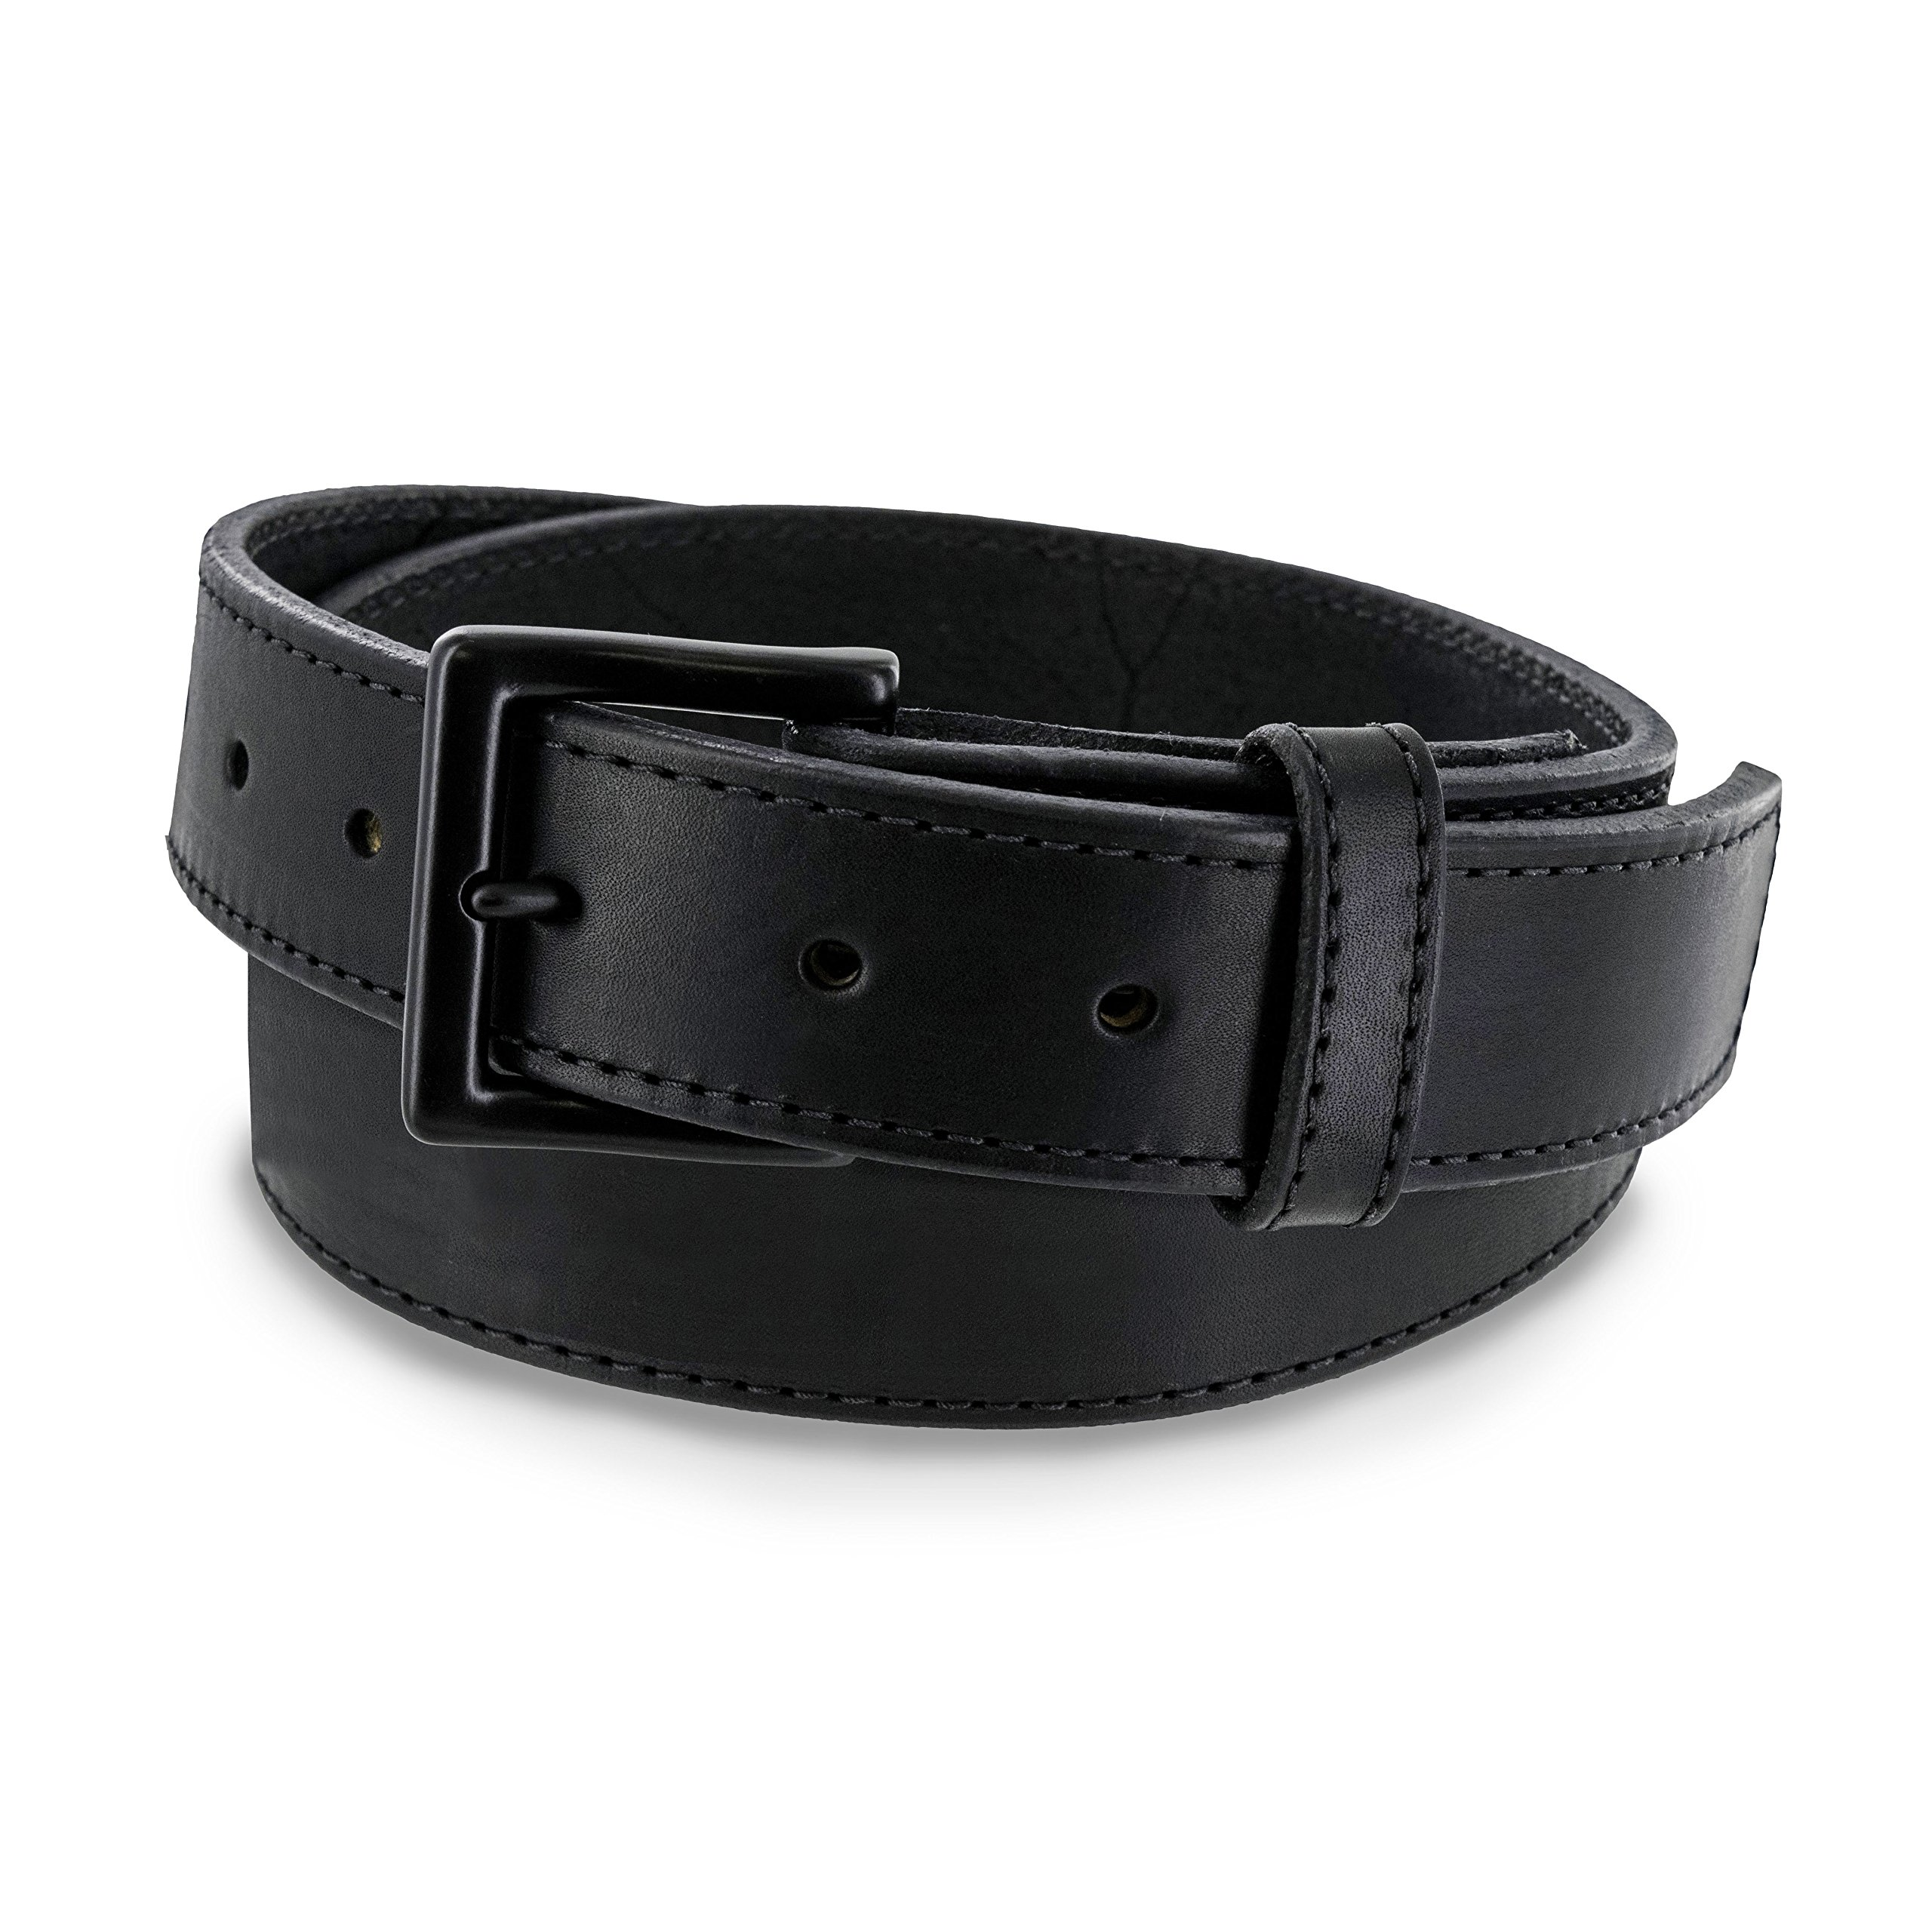 Hanks A2760 Leather Tactical Belt - 1.5'' - Black - Size 34 by Hanks Belts